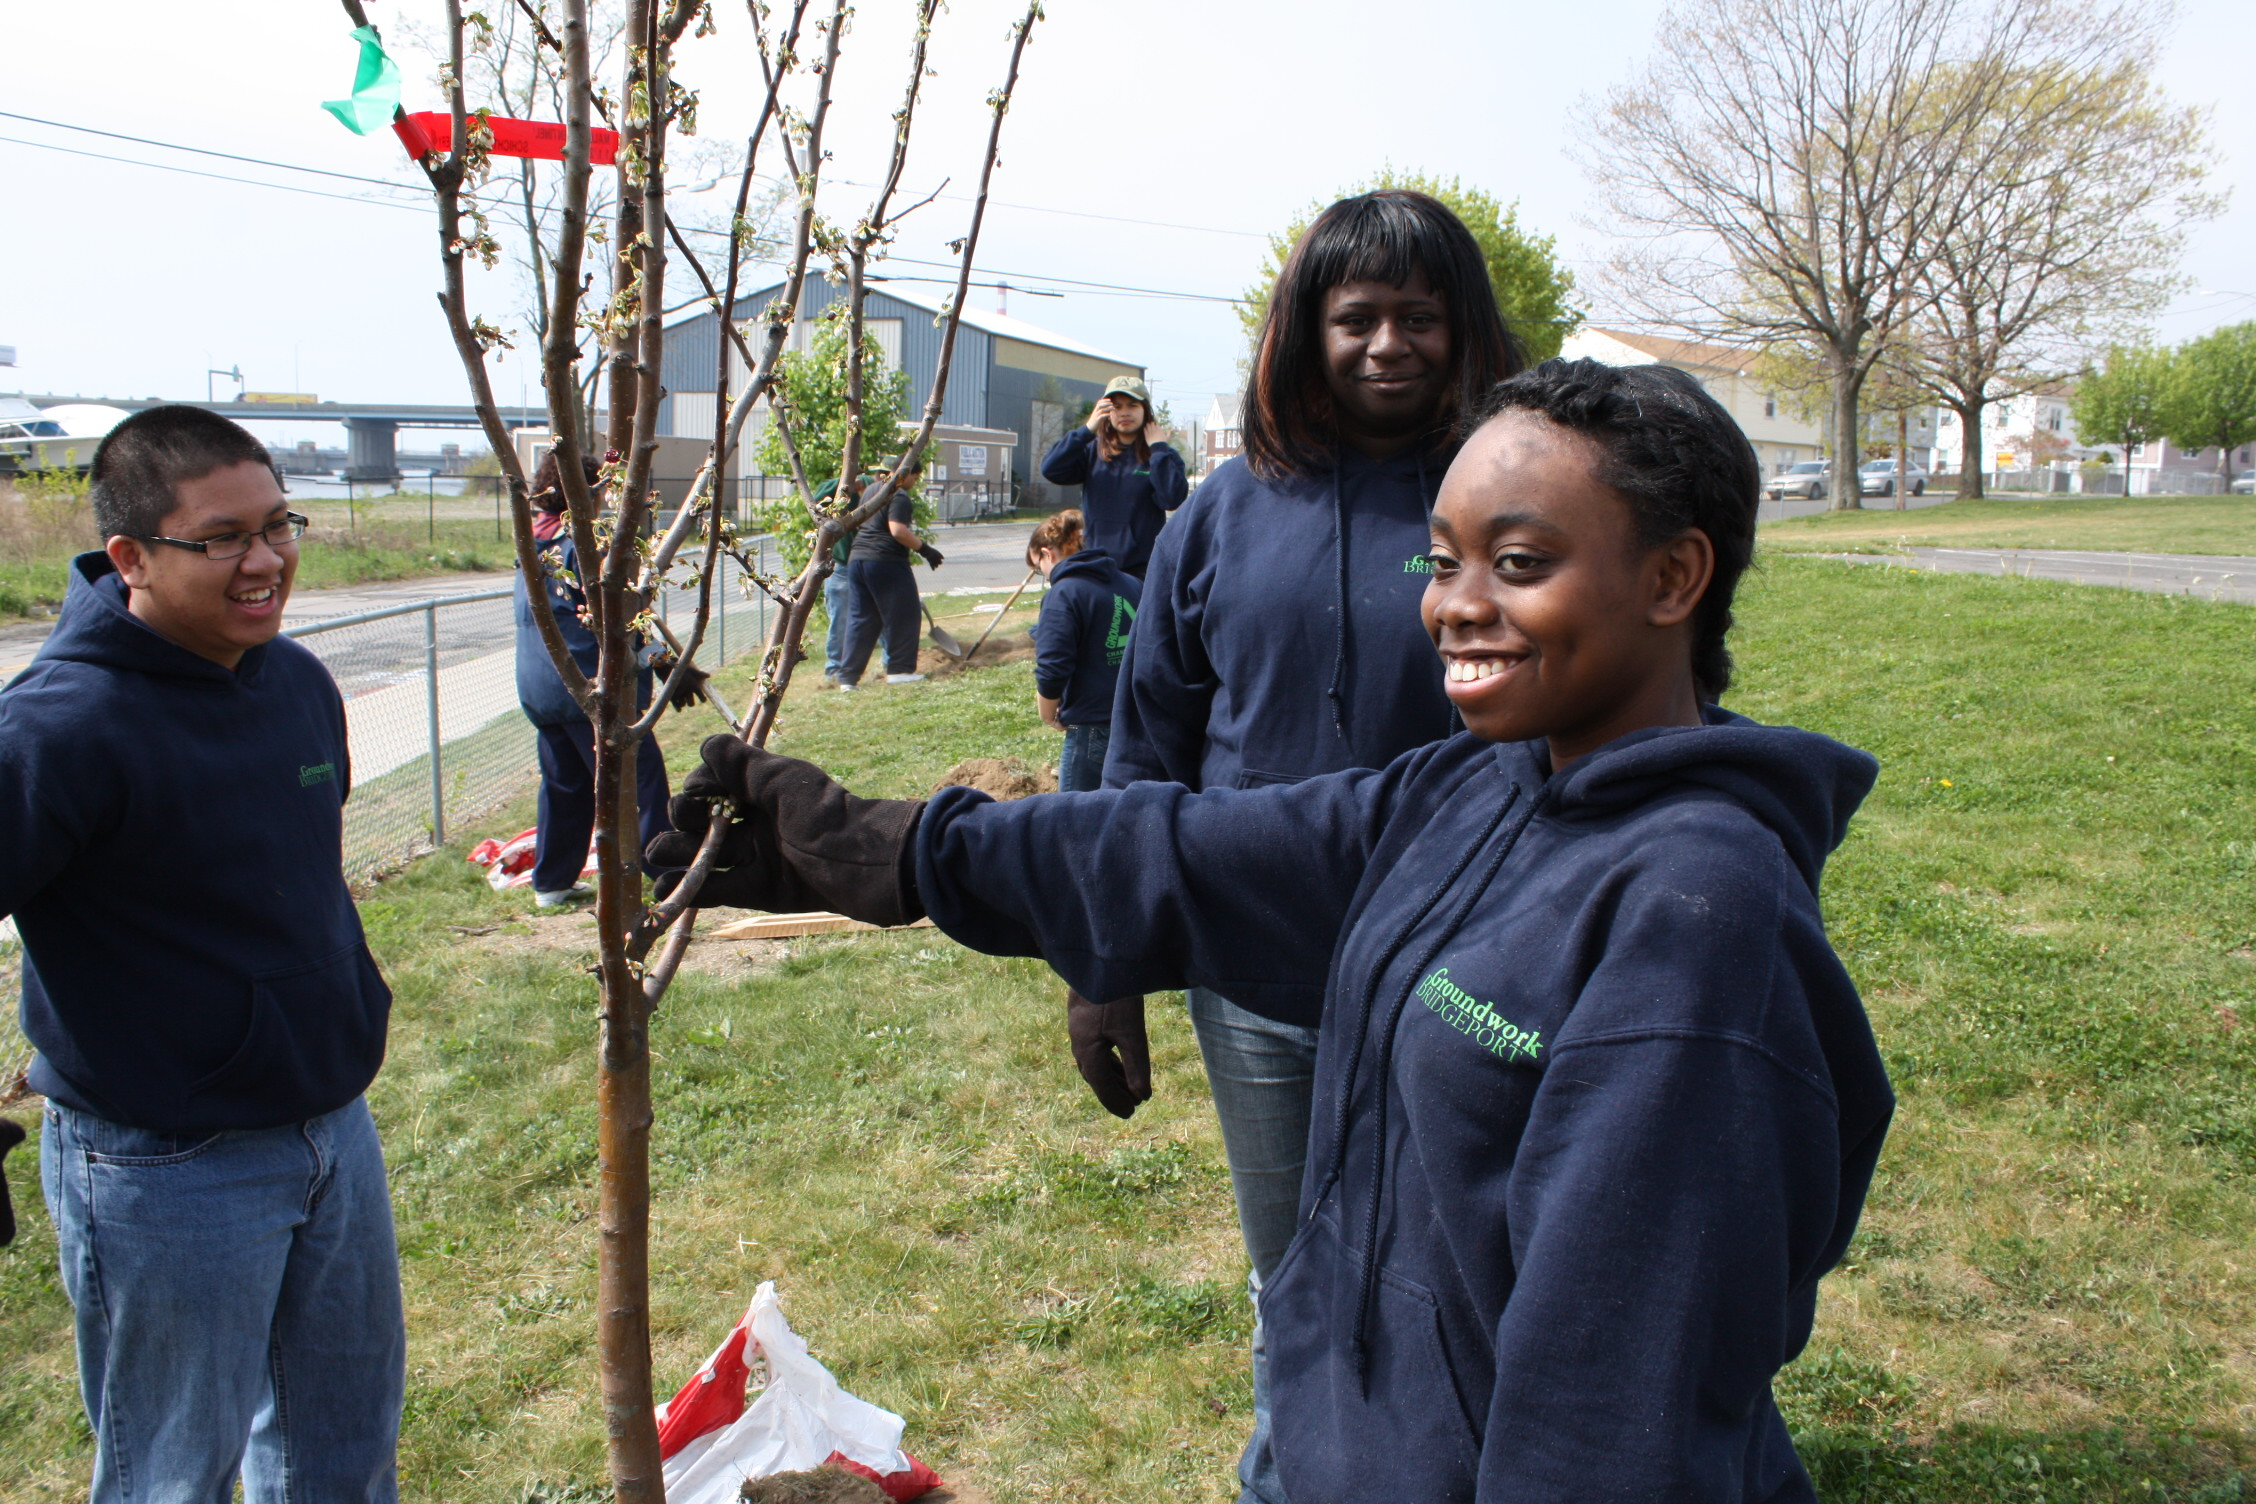 Partnering with the City of Bridgeport to Support Urban Forestry